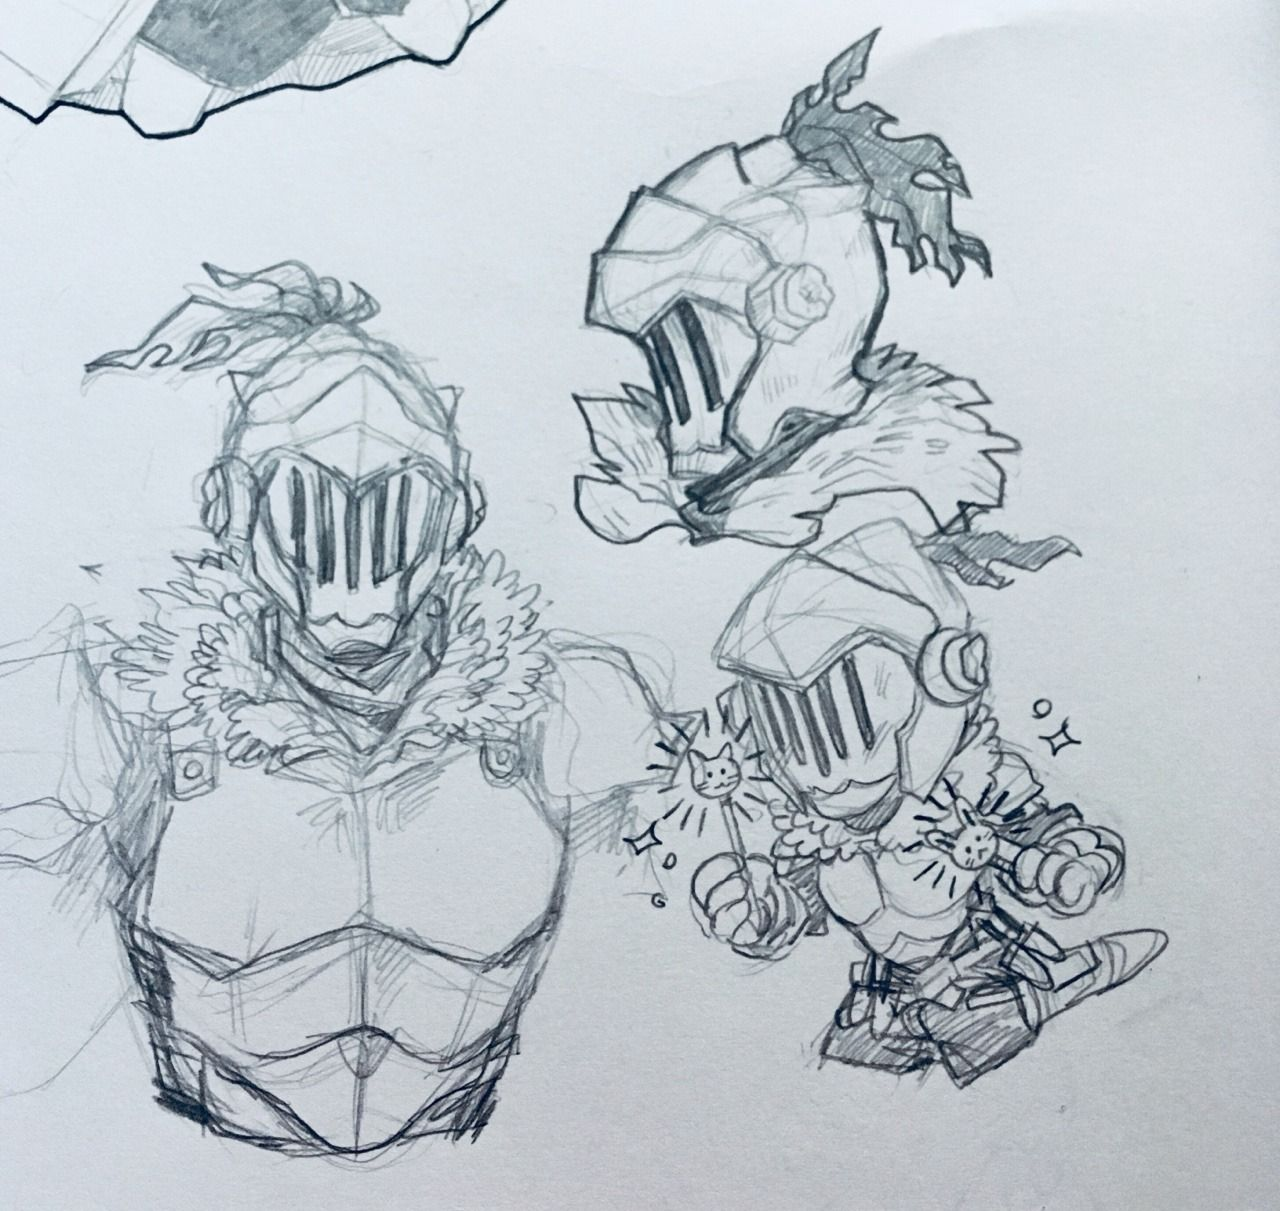 I Need To Get Better At Drawing Armor So I Can Draw Husband Goblin Slayer By Inspector Doodles Tumblr Armor Drawing Armor Drawings Drawings